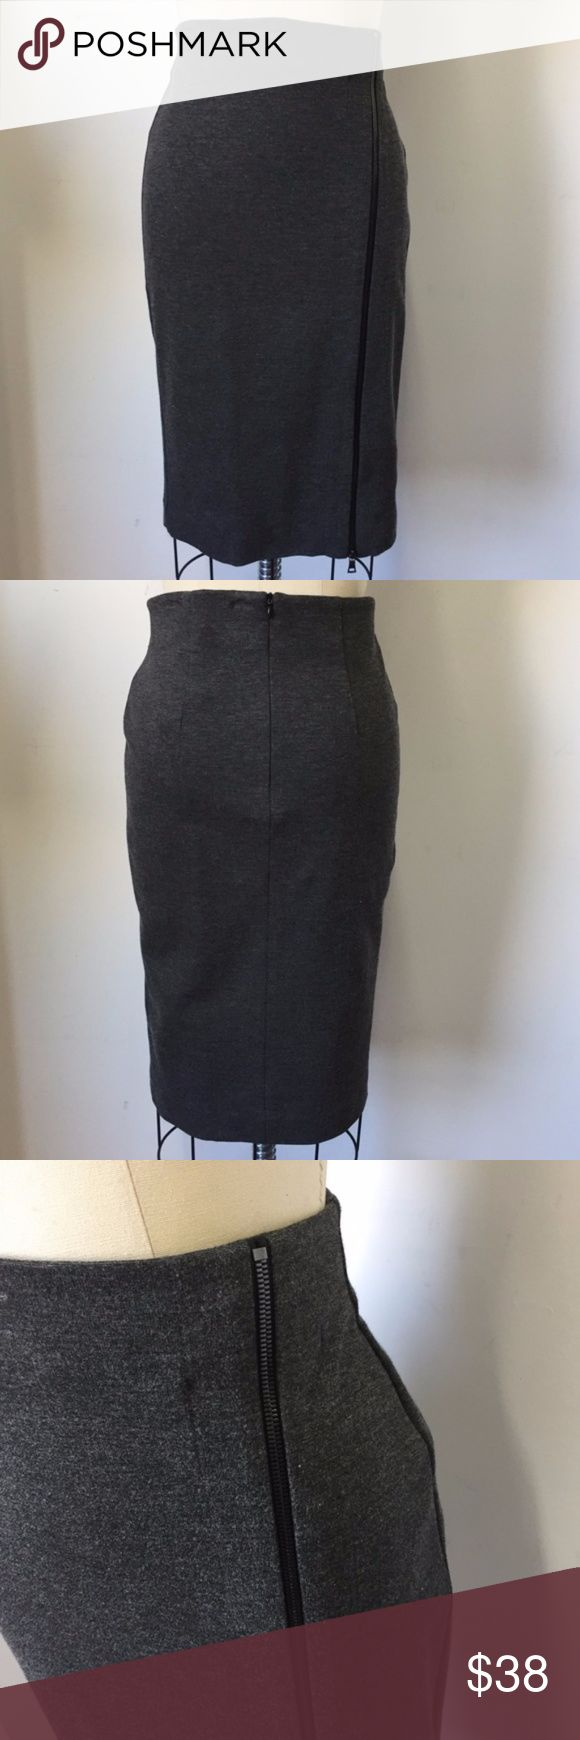 """Three Dots Women's Gray Pencil Skirt Gray midi pencil skirt  Size M Length 25 1/2"""" Zipper side and back for closure  New product with tag W22 PE17 Three Dots Skirts Midi"""